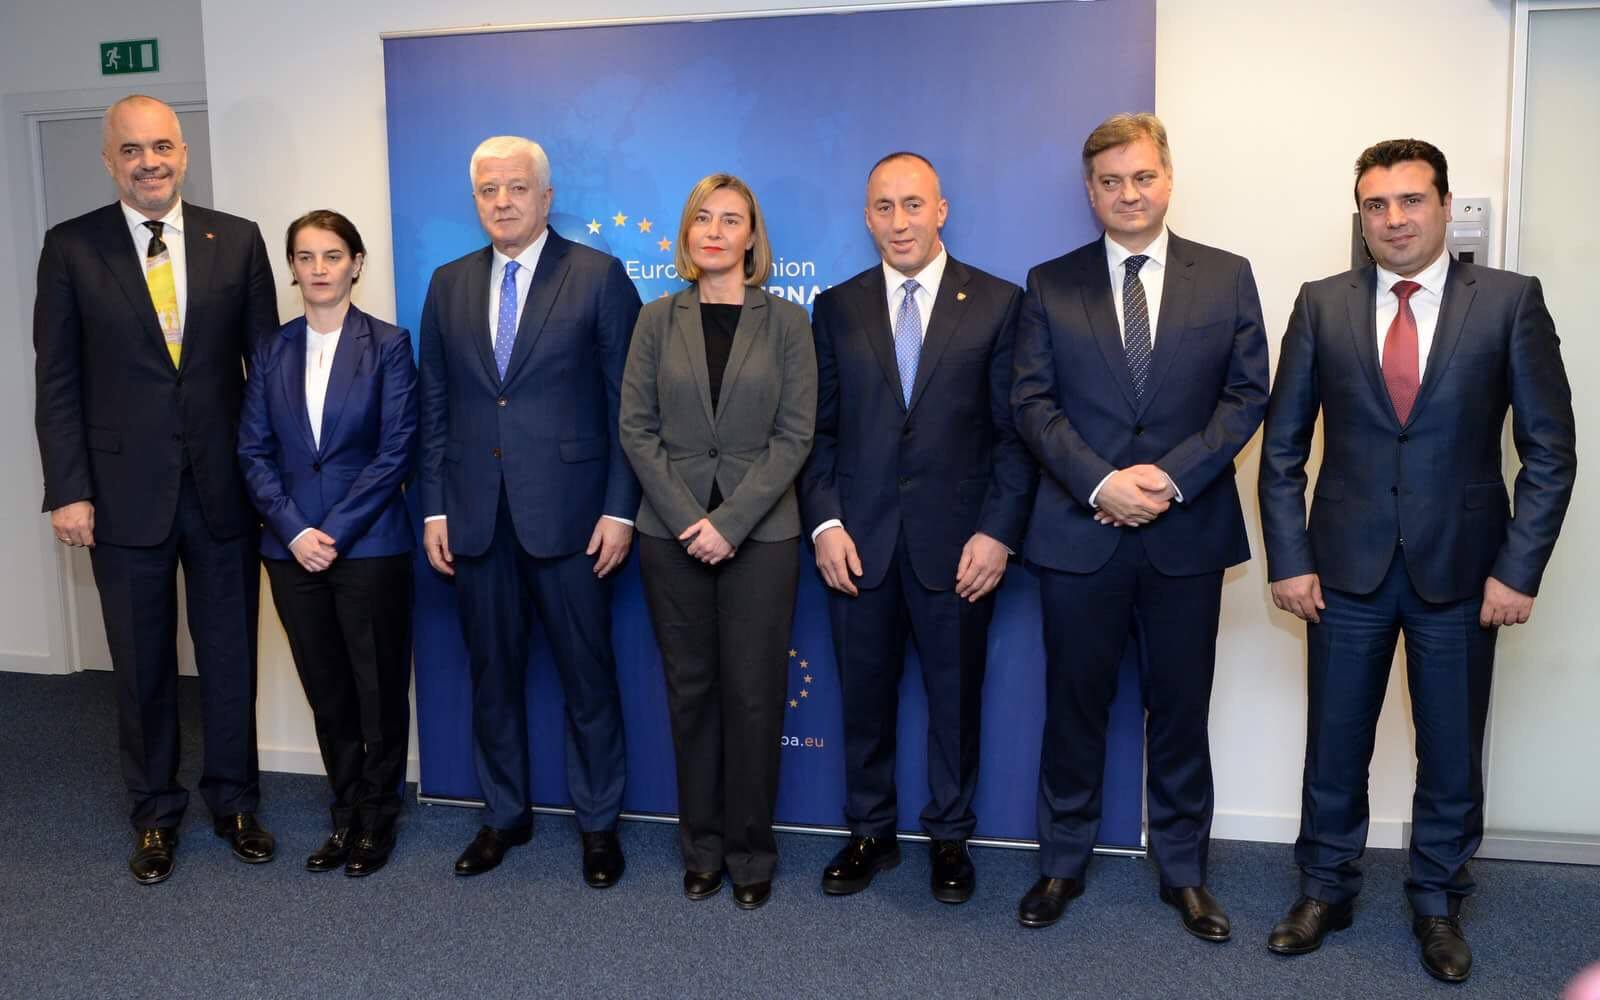 PM Zaev comments the meeting with the prime ministers of the region and Mogherini